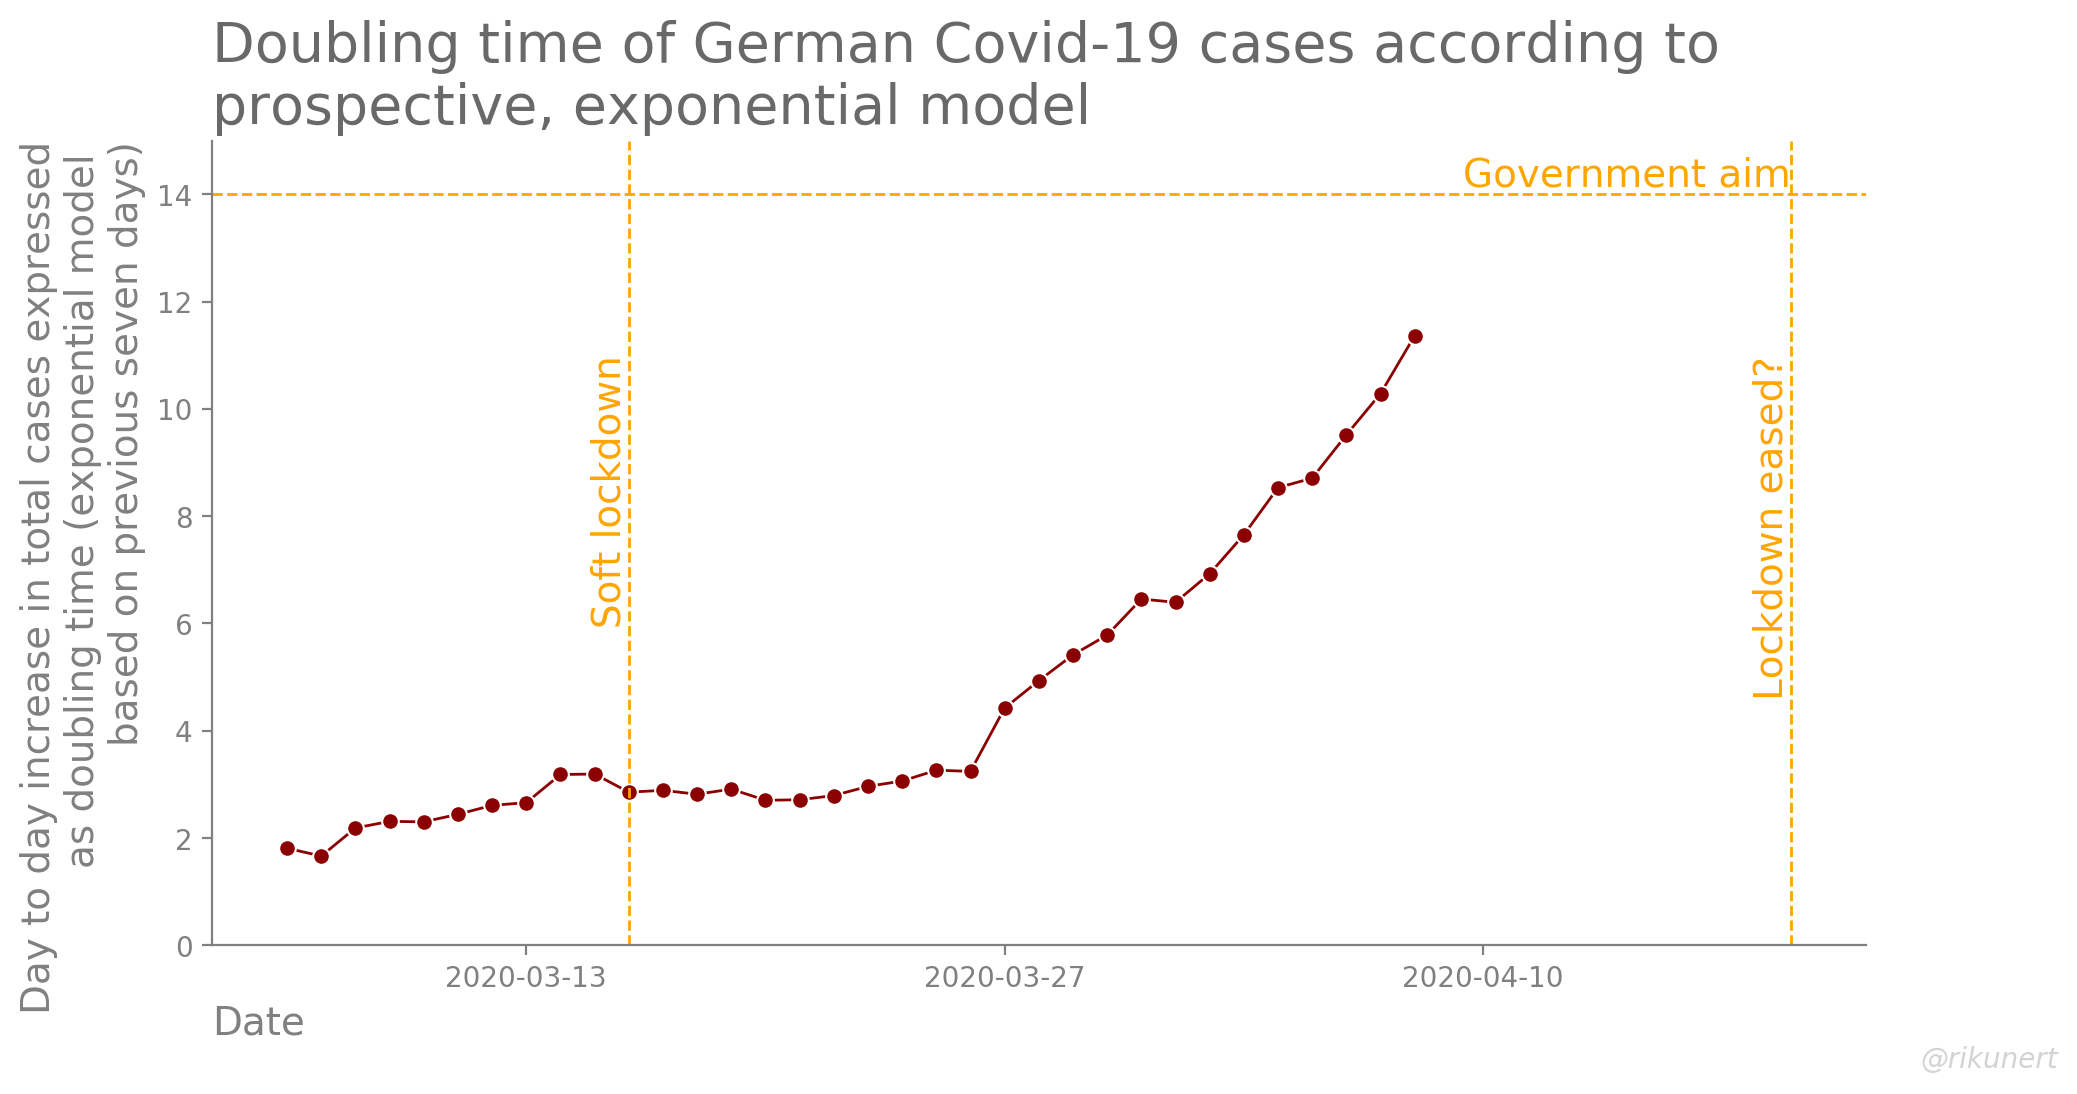 Doubling time assuming an exponential model for total Covid-19 case growth in Germany